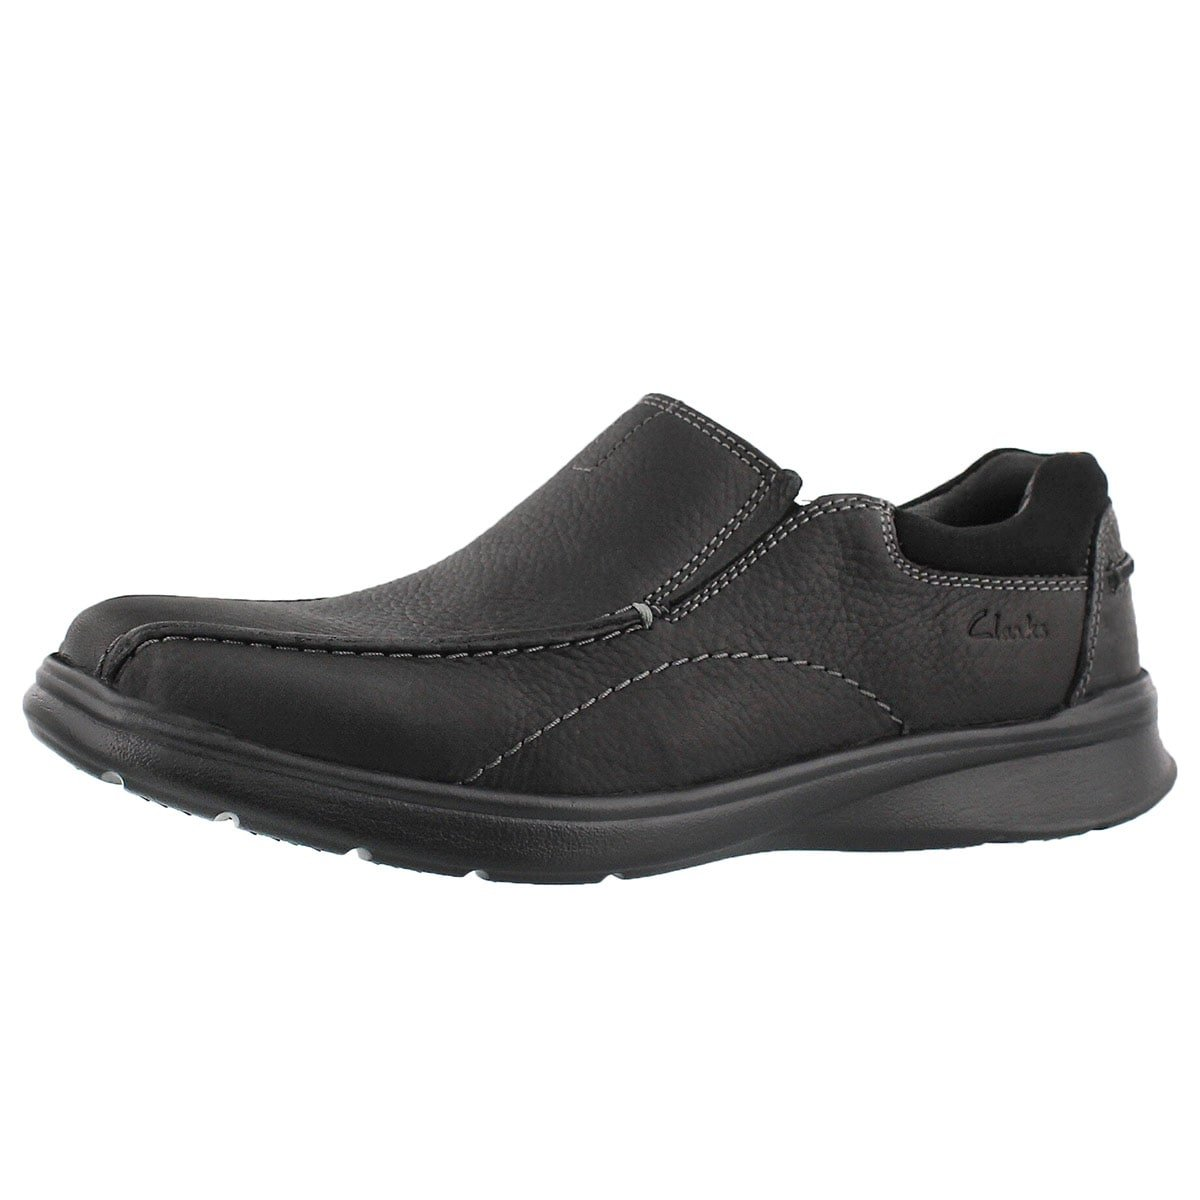 CLARKS Men's Cotrell Step Slip On Casual Loafer - Wide Black 11 W US